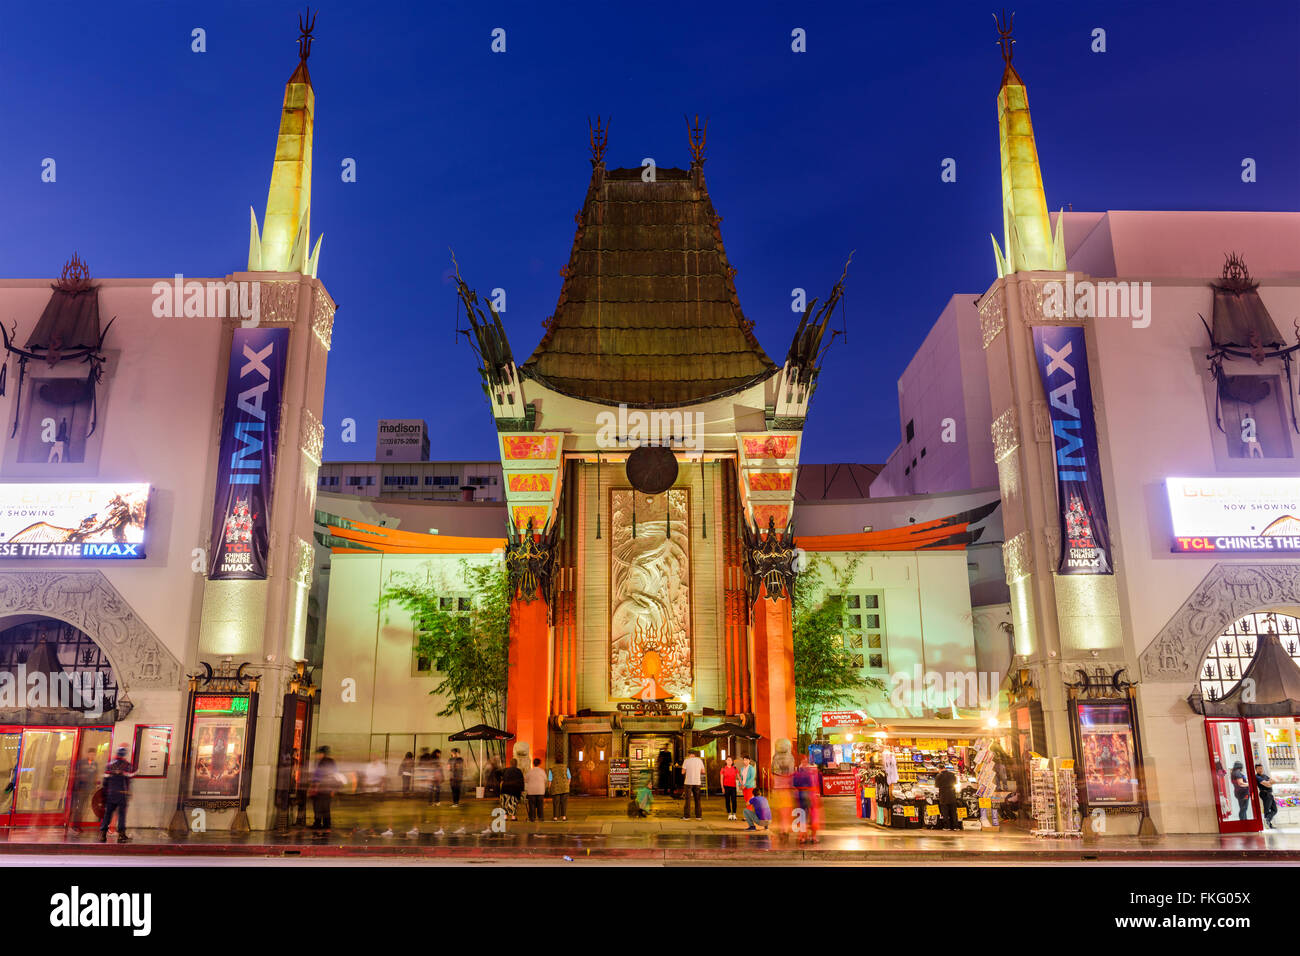 Grauman's Chinese Theater on Hollywood Boulevard in Hollywood, California, USA. - Stock Image